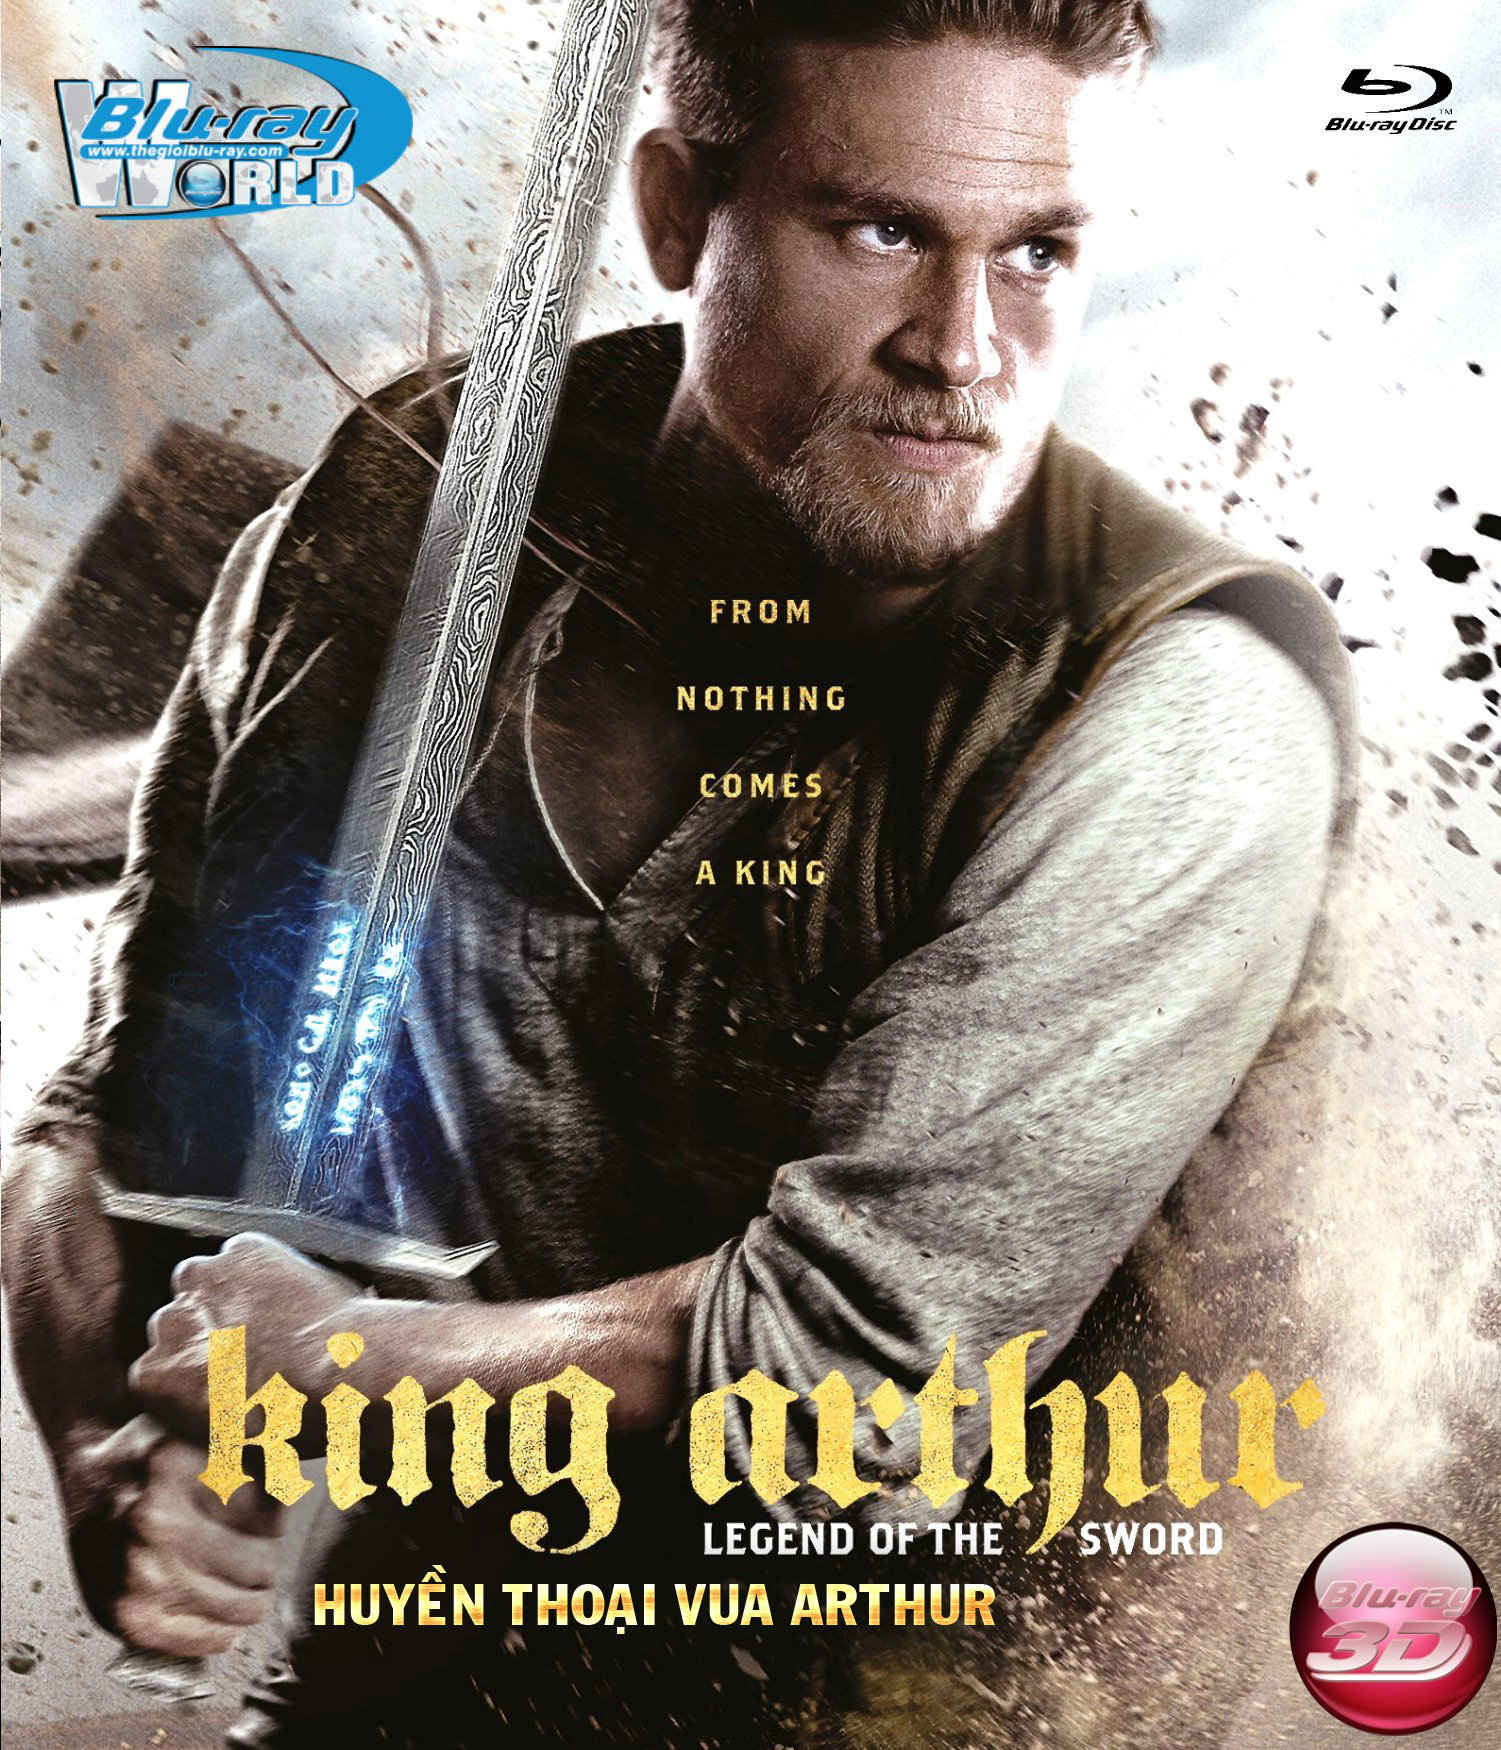 D336.King Arthur Legend of the Sword (2017) (HUYEN THOAI VUA ARTHUR) 3D25G